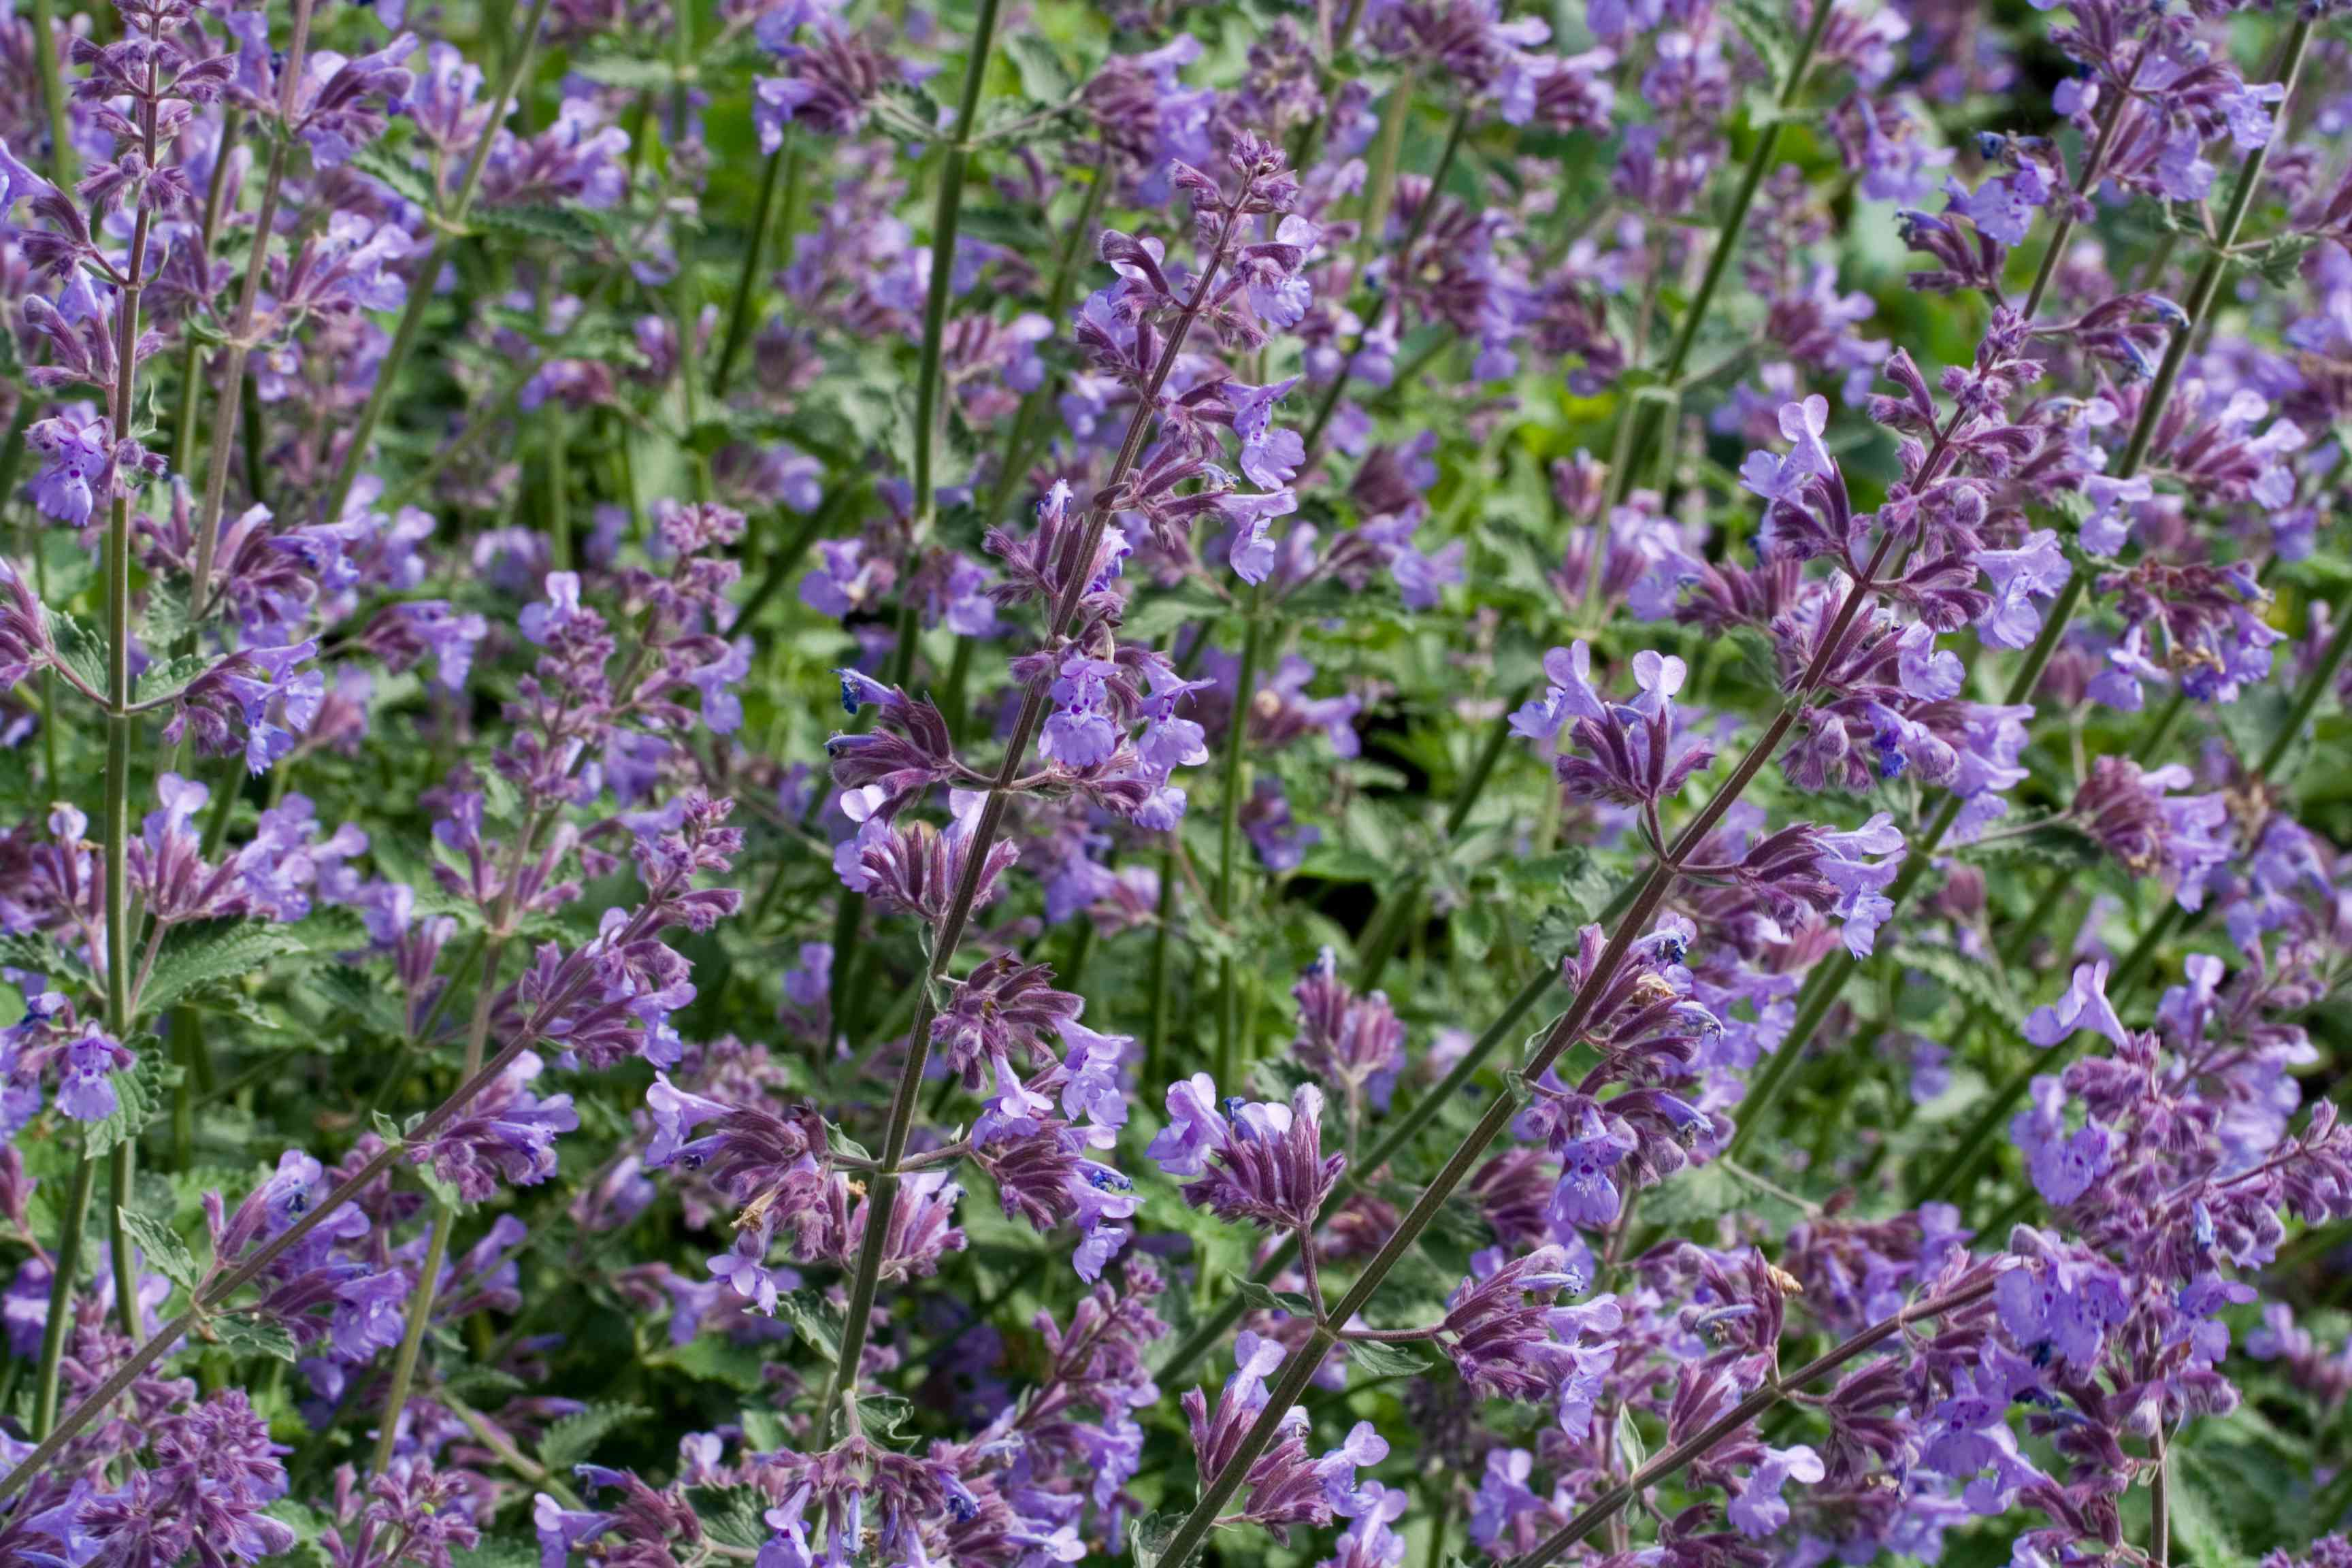 wild catnip plant in bloom with lavender flowers